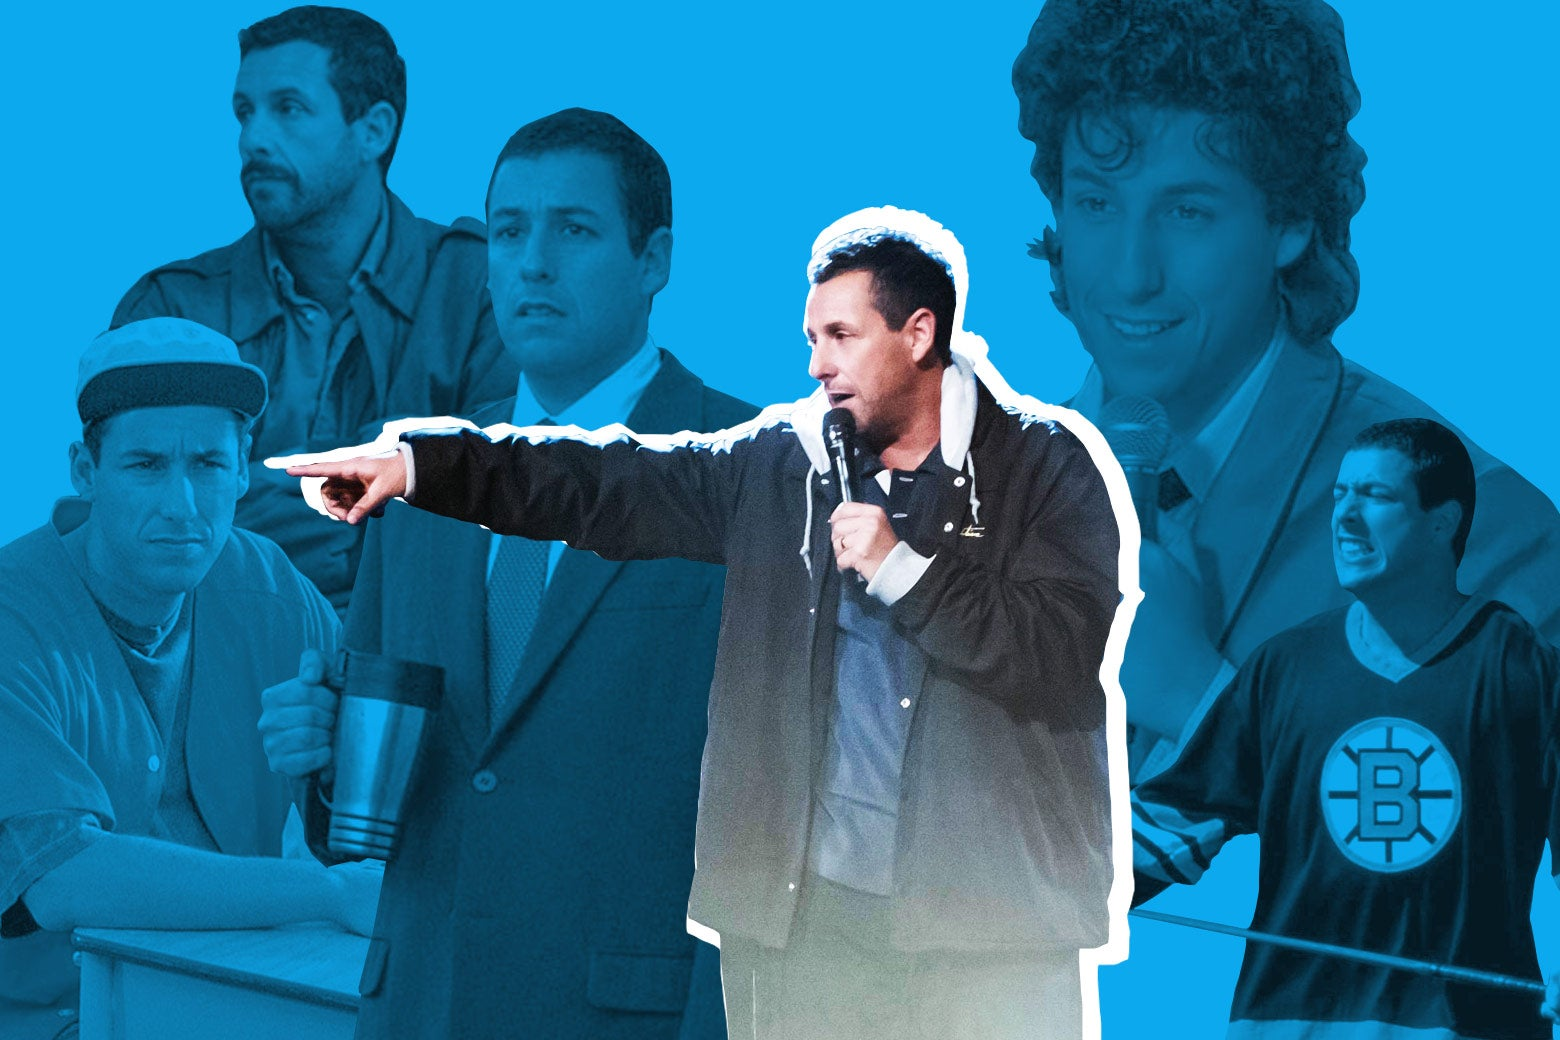 Adam Sandler, performing stand-up and in various roles.